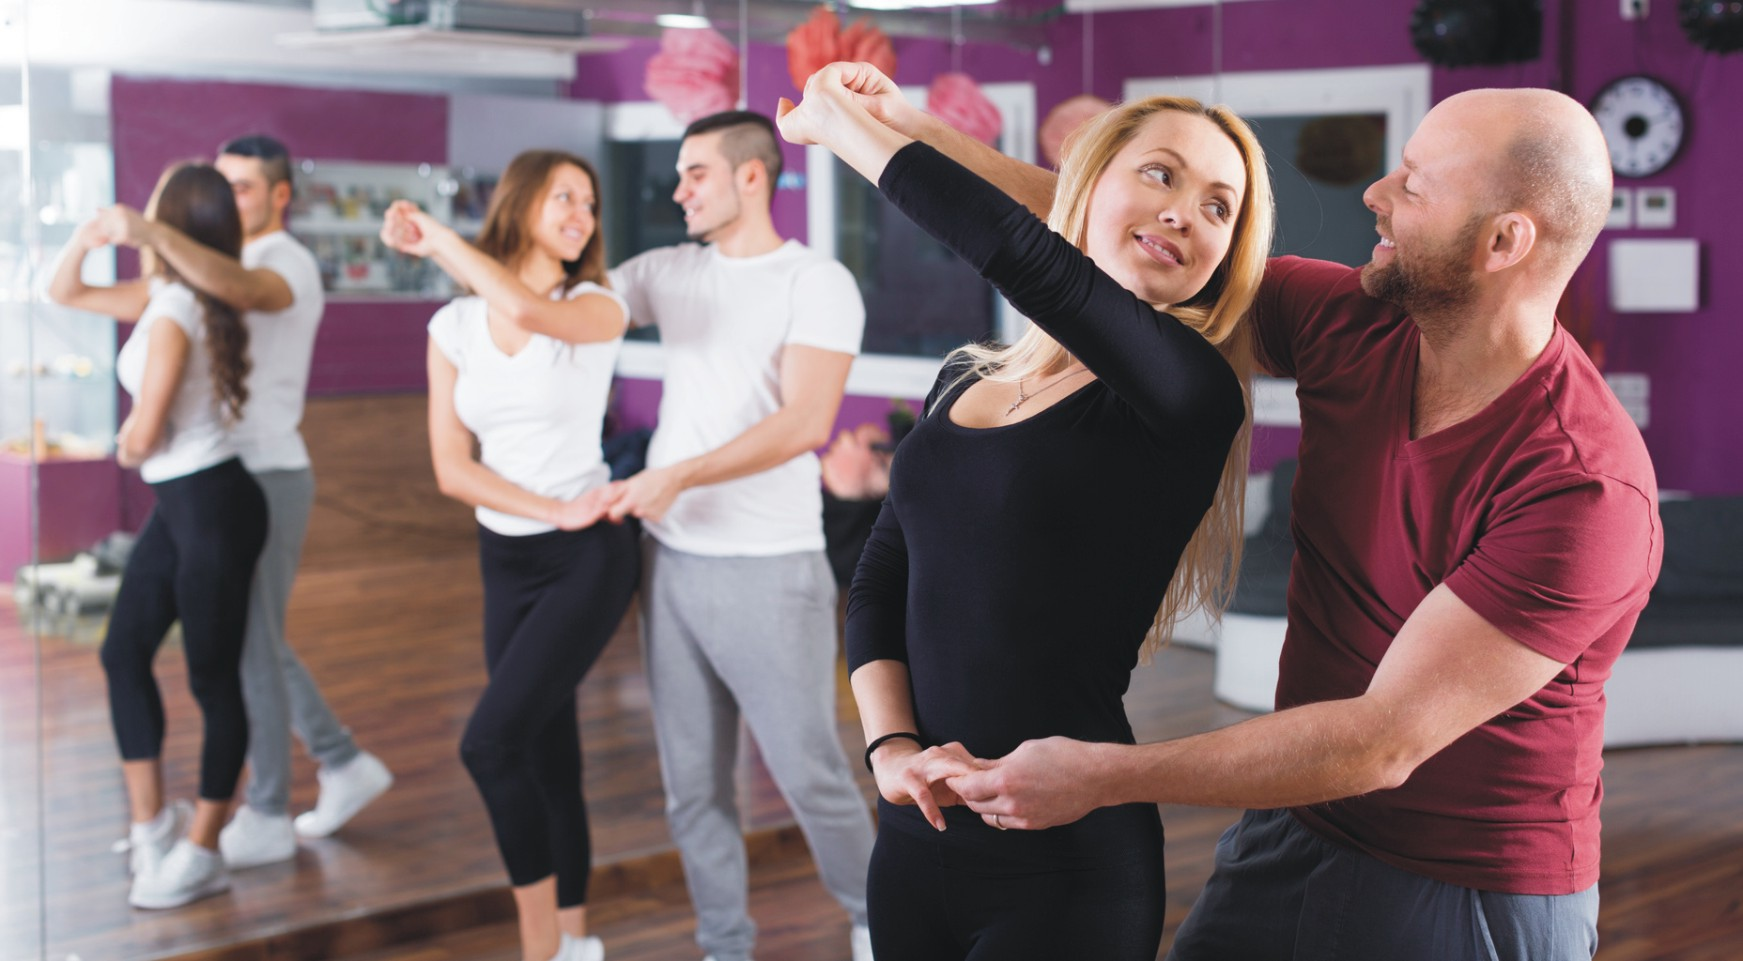 ADTV Tanzschule Meiners - DIE Tanzschule in Hannover